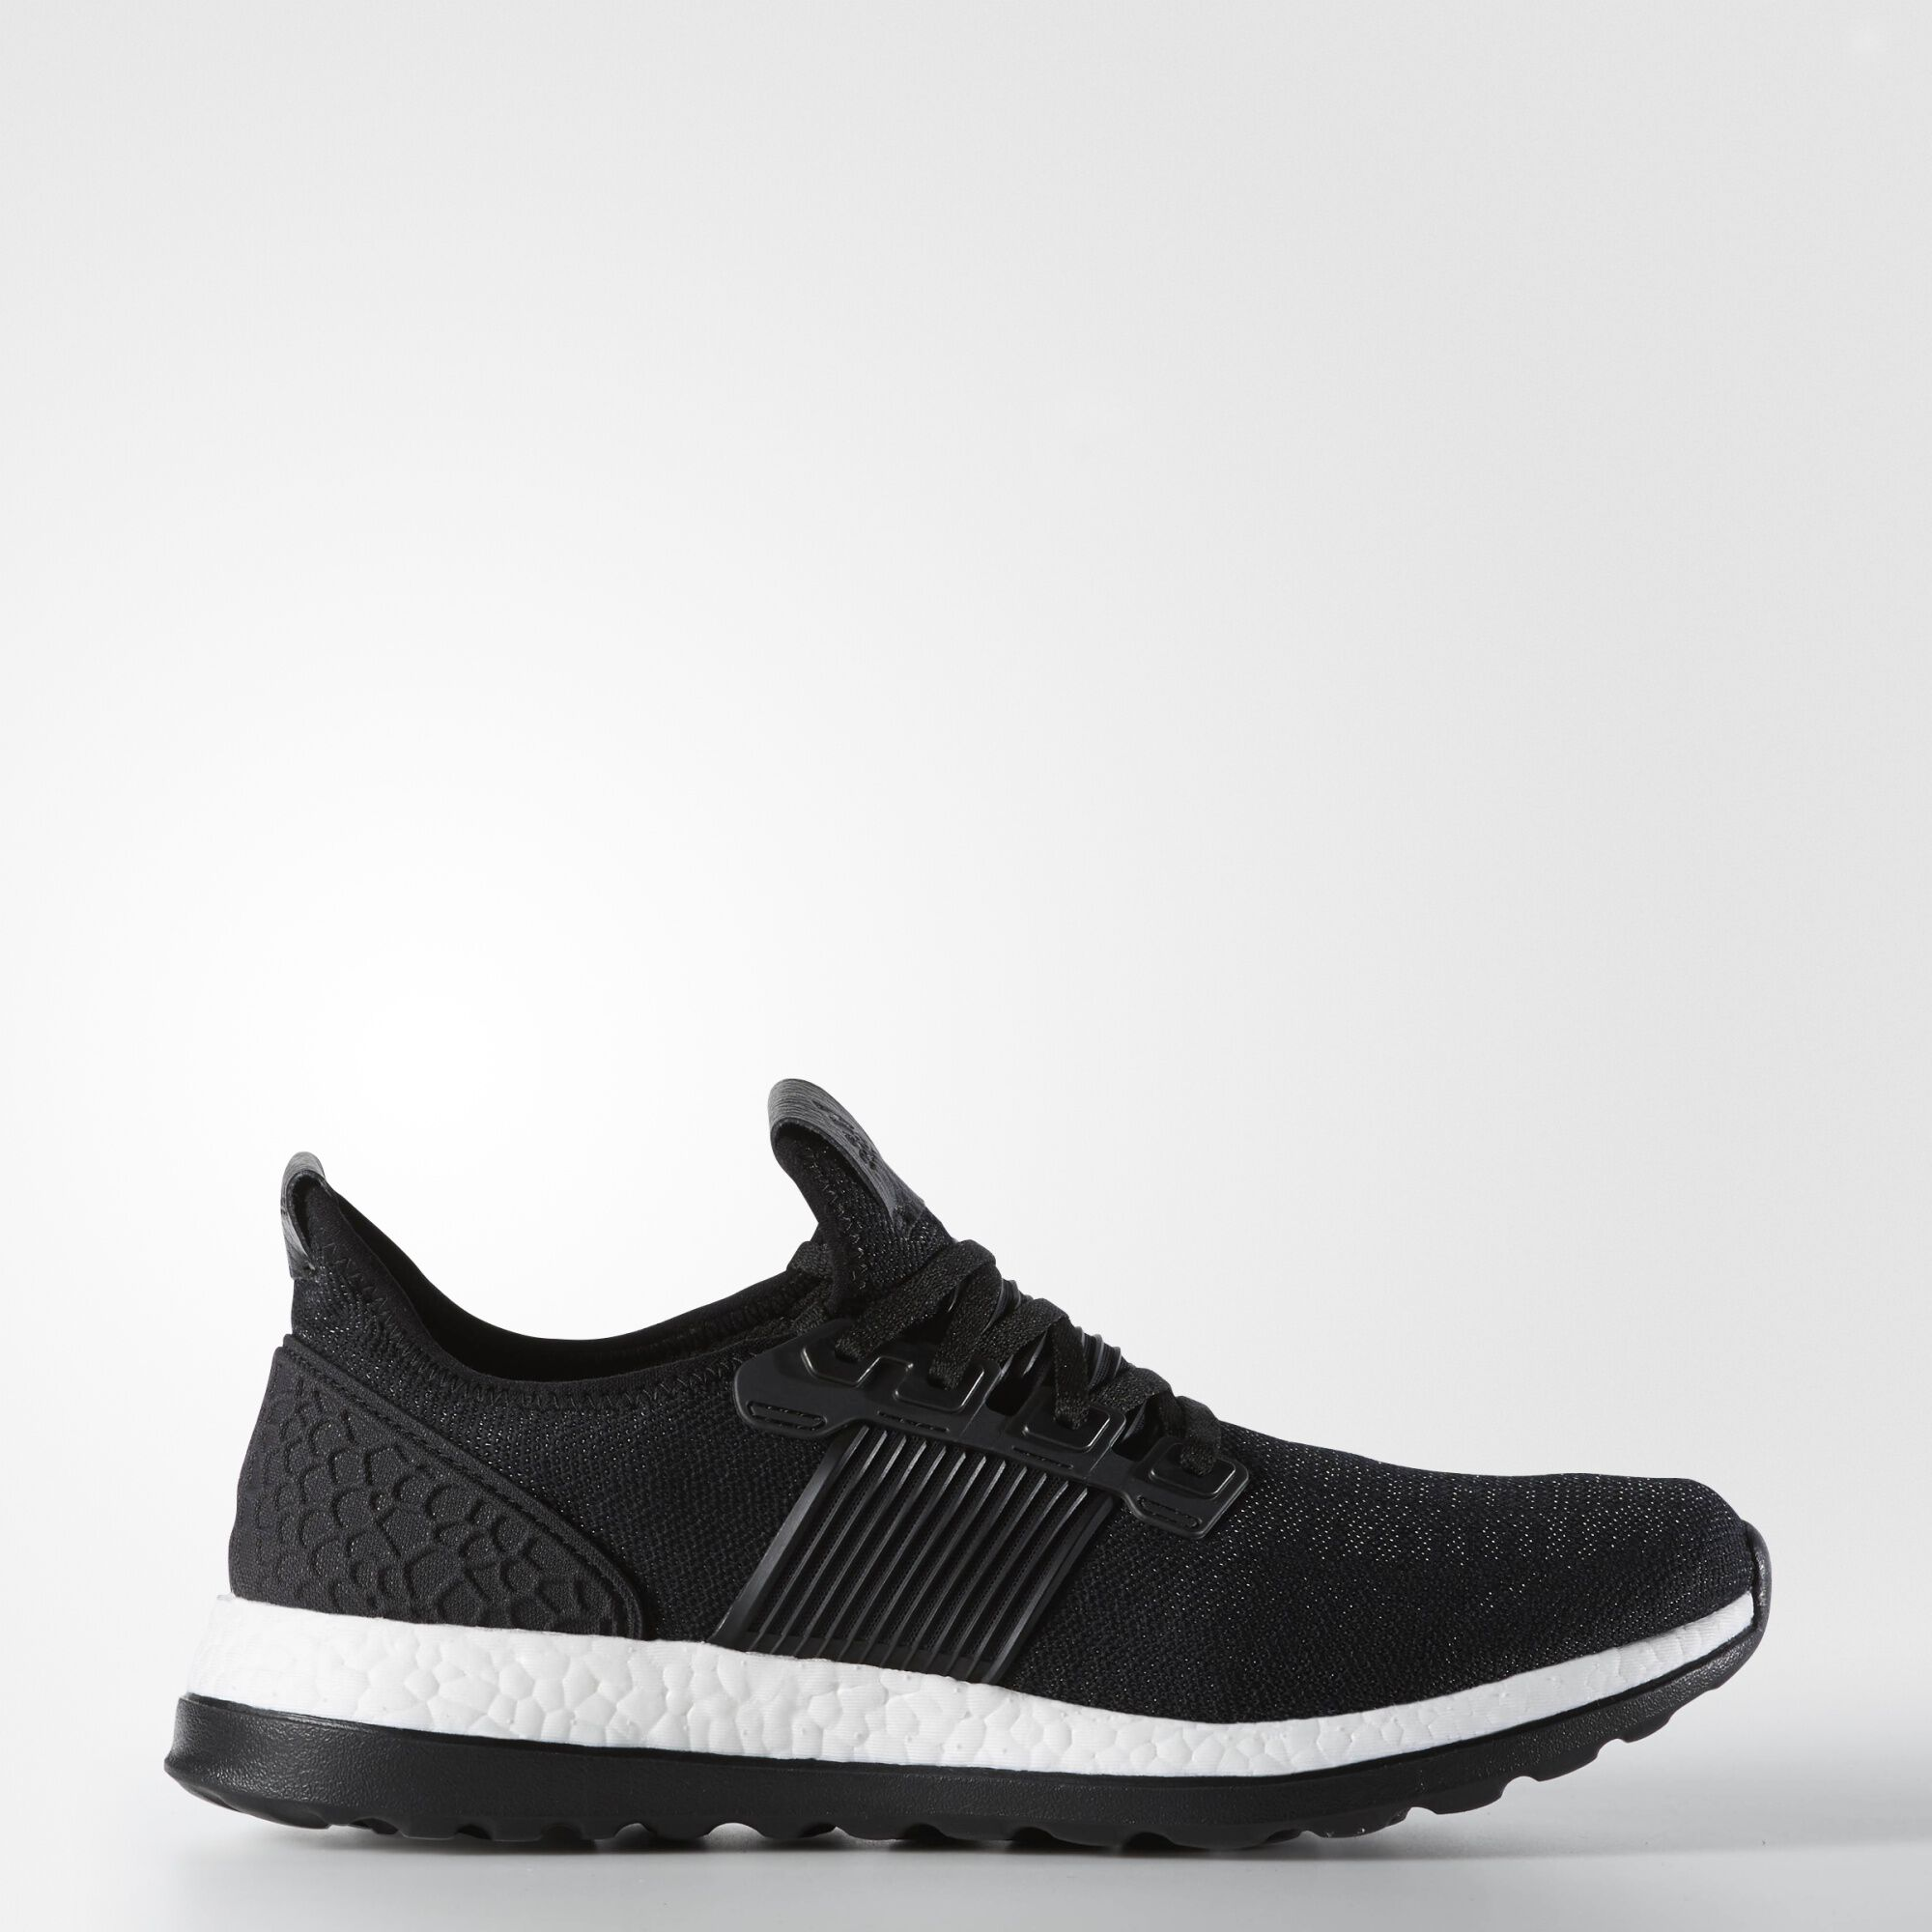 adidas online shop usa